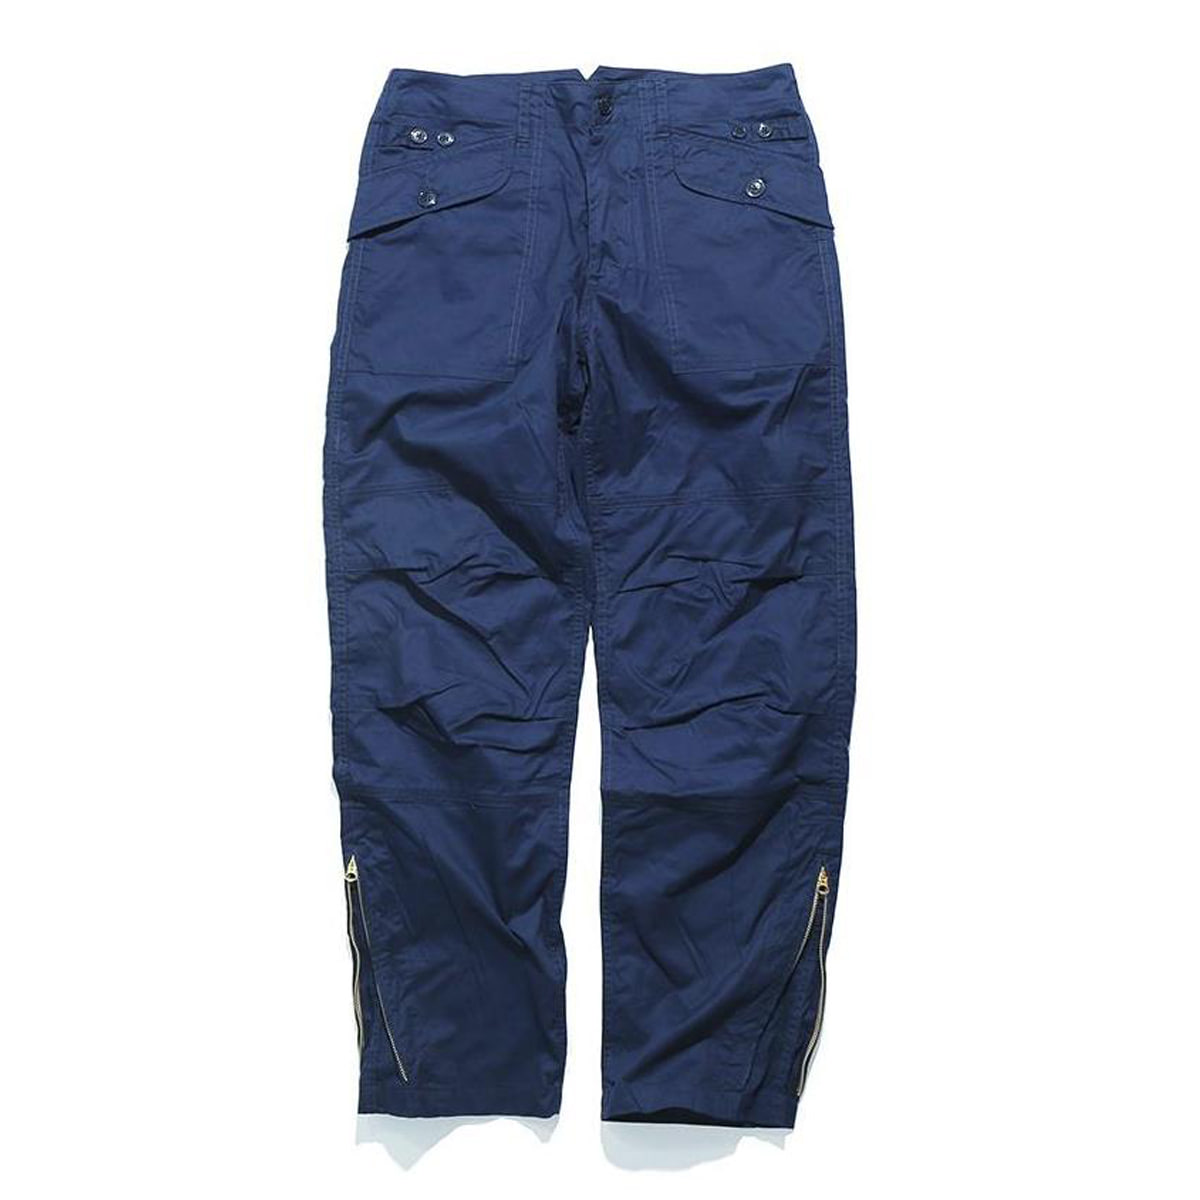 [WORKWARE] US NAVY HELICOPTER PANTS 'NAVY'